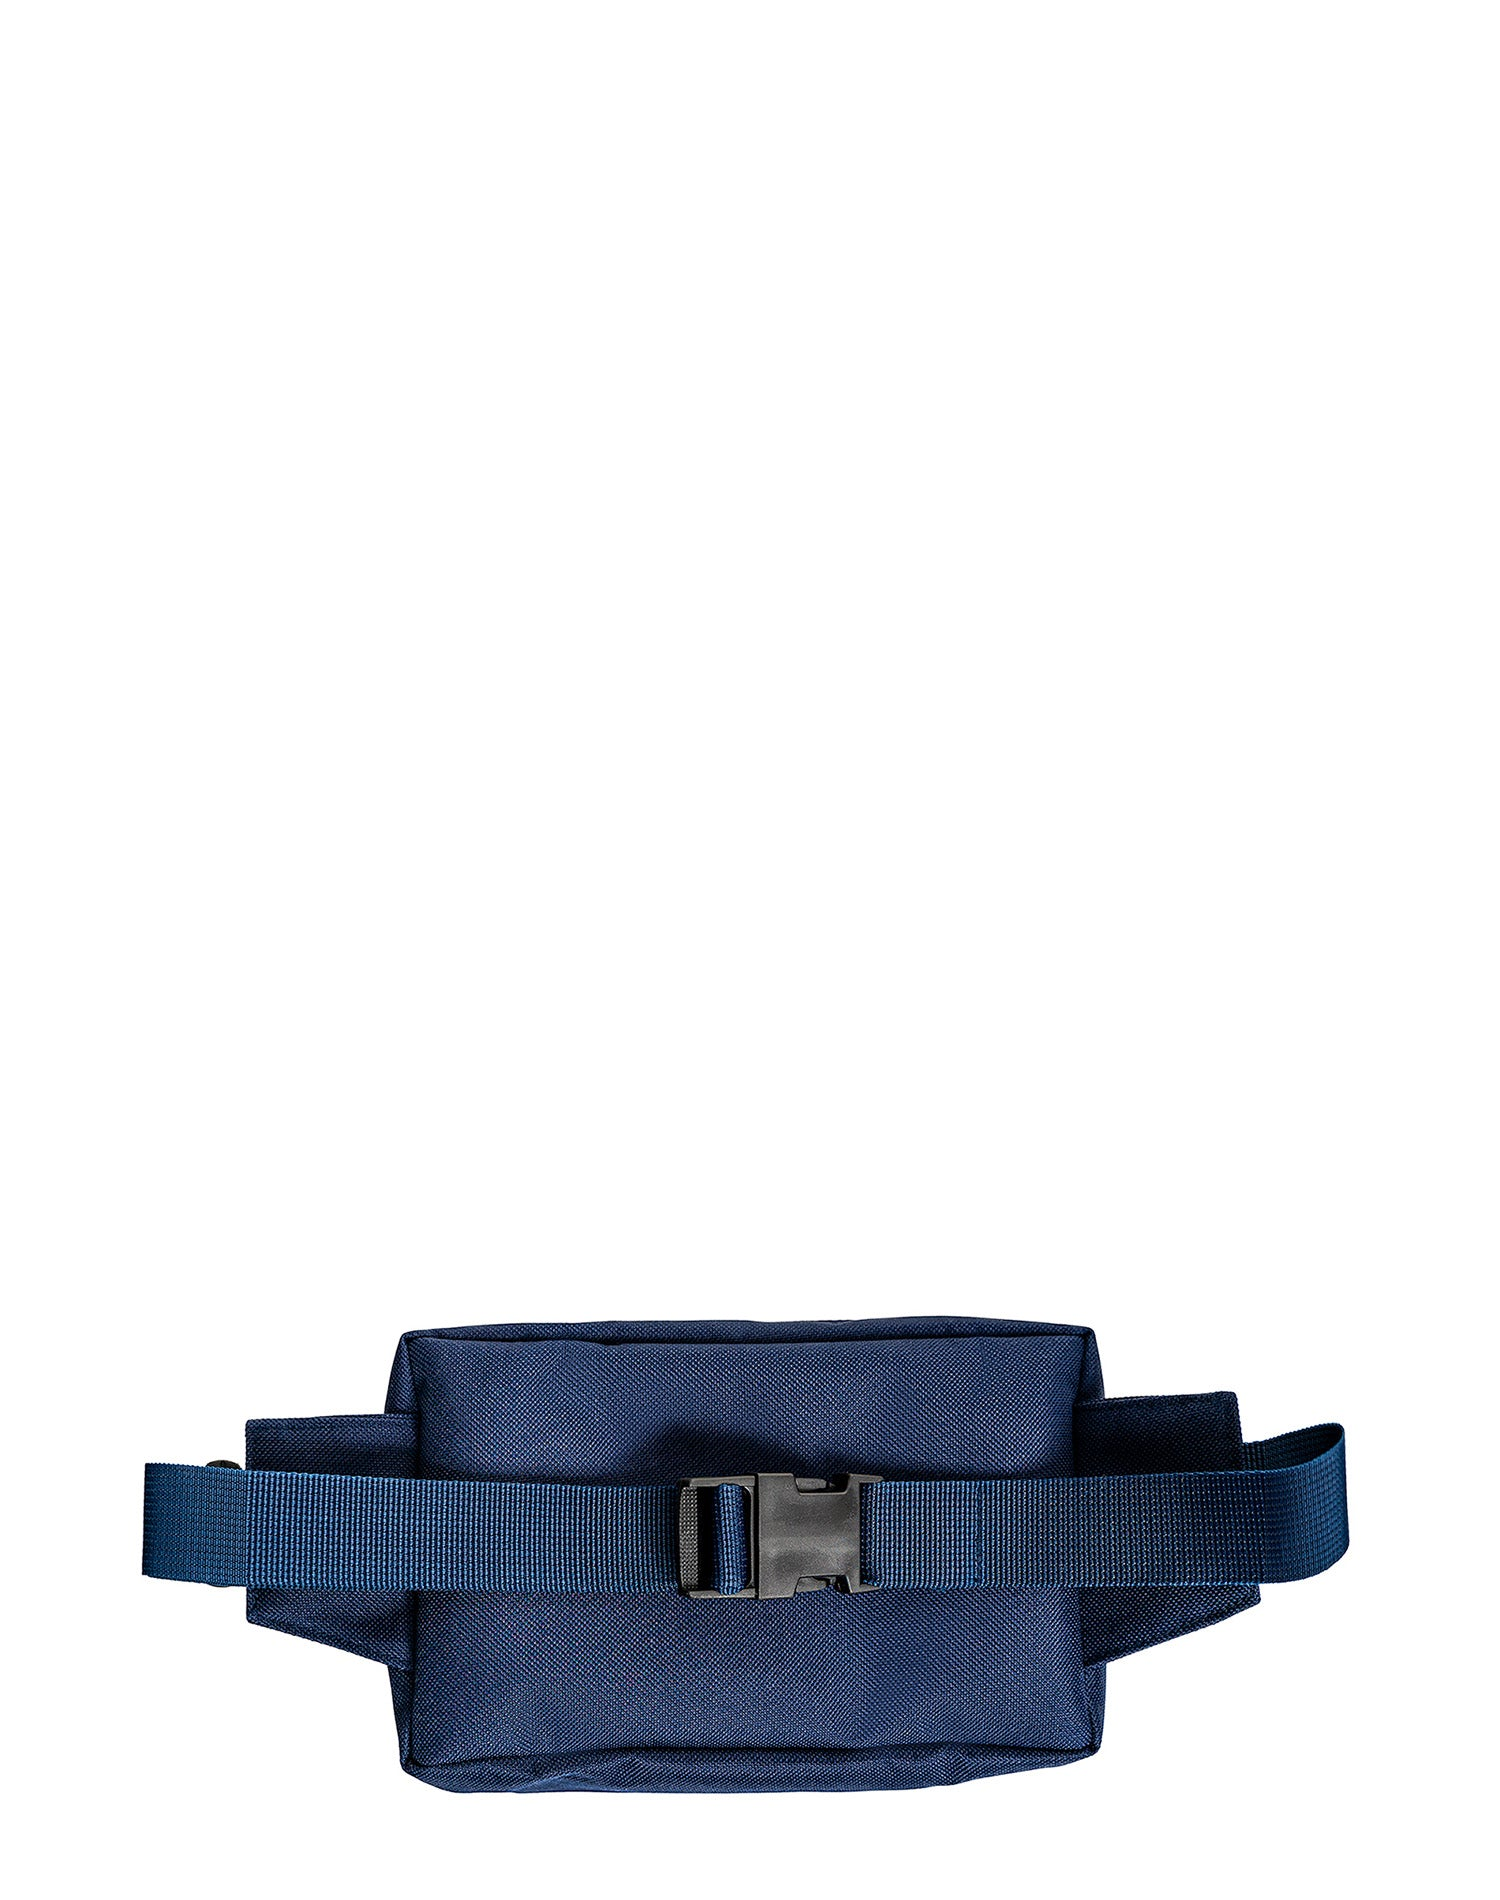 Indigo Blast Canvas Tool Belt Sling Bag.紅藍色帆布腰包